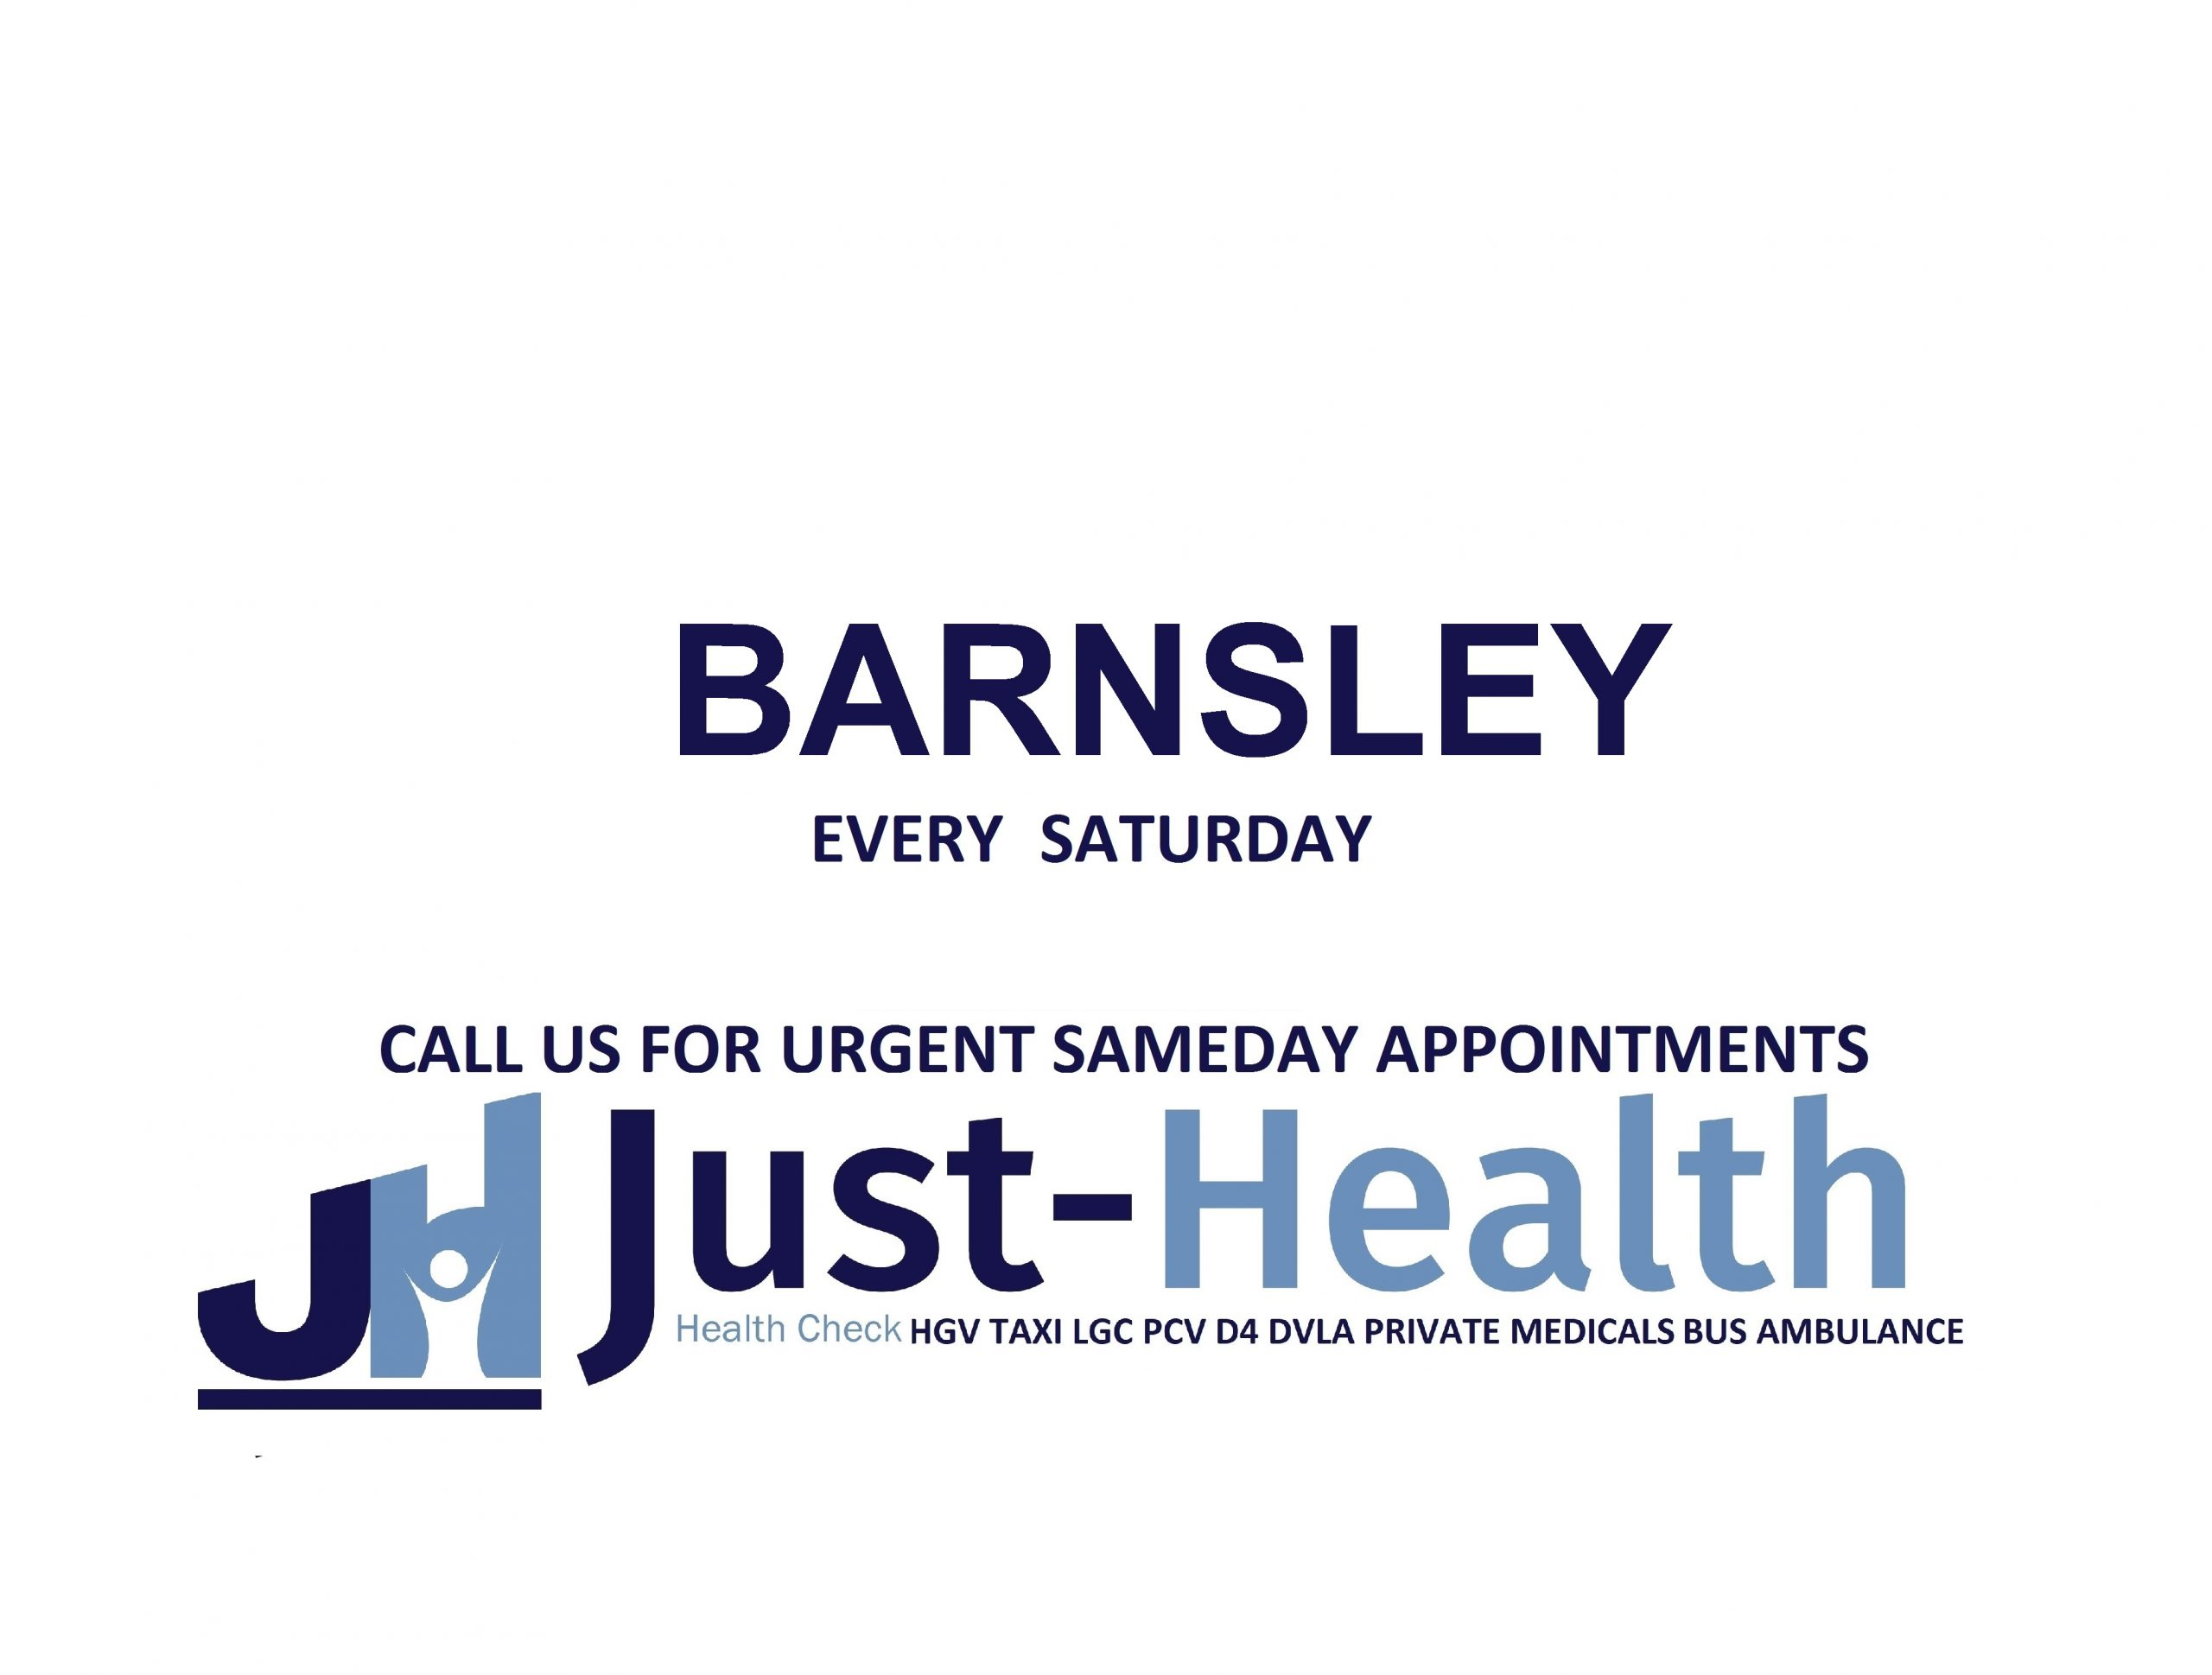 JUST HEALTH barnsley HGV Medical